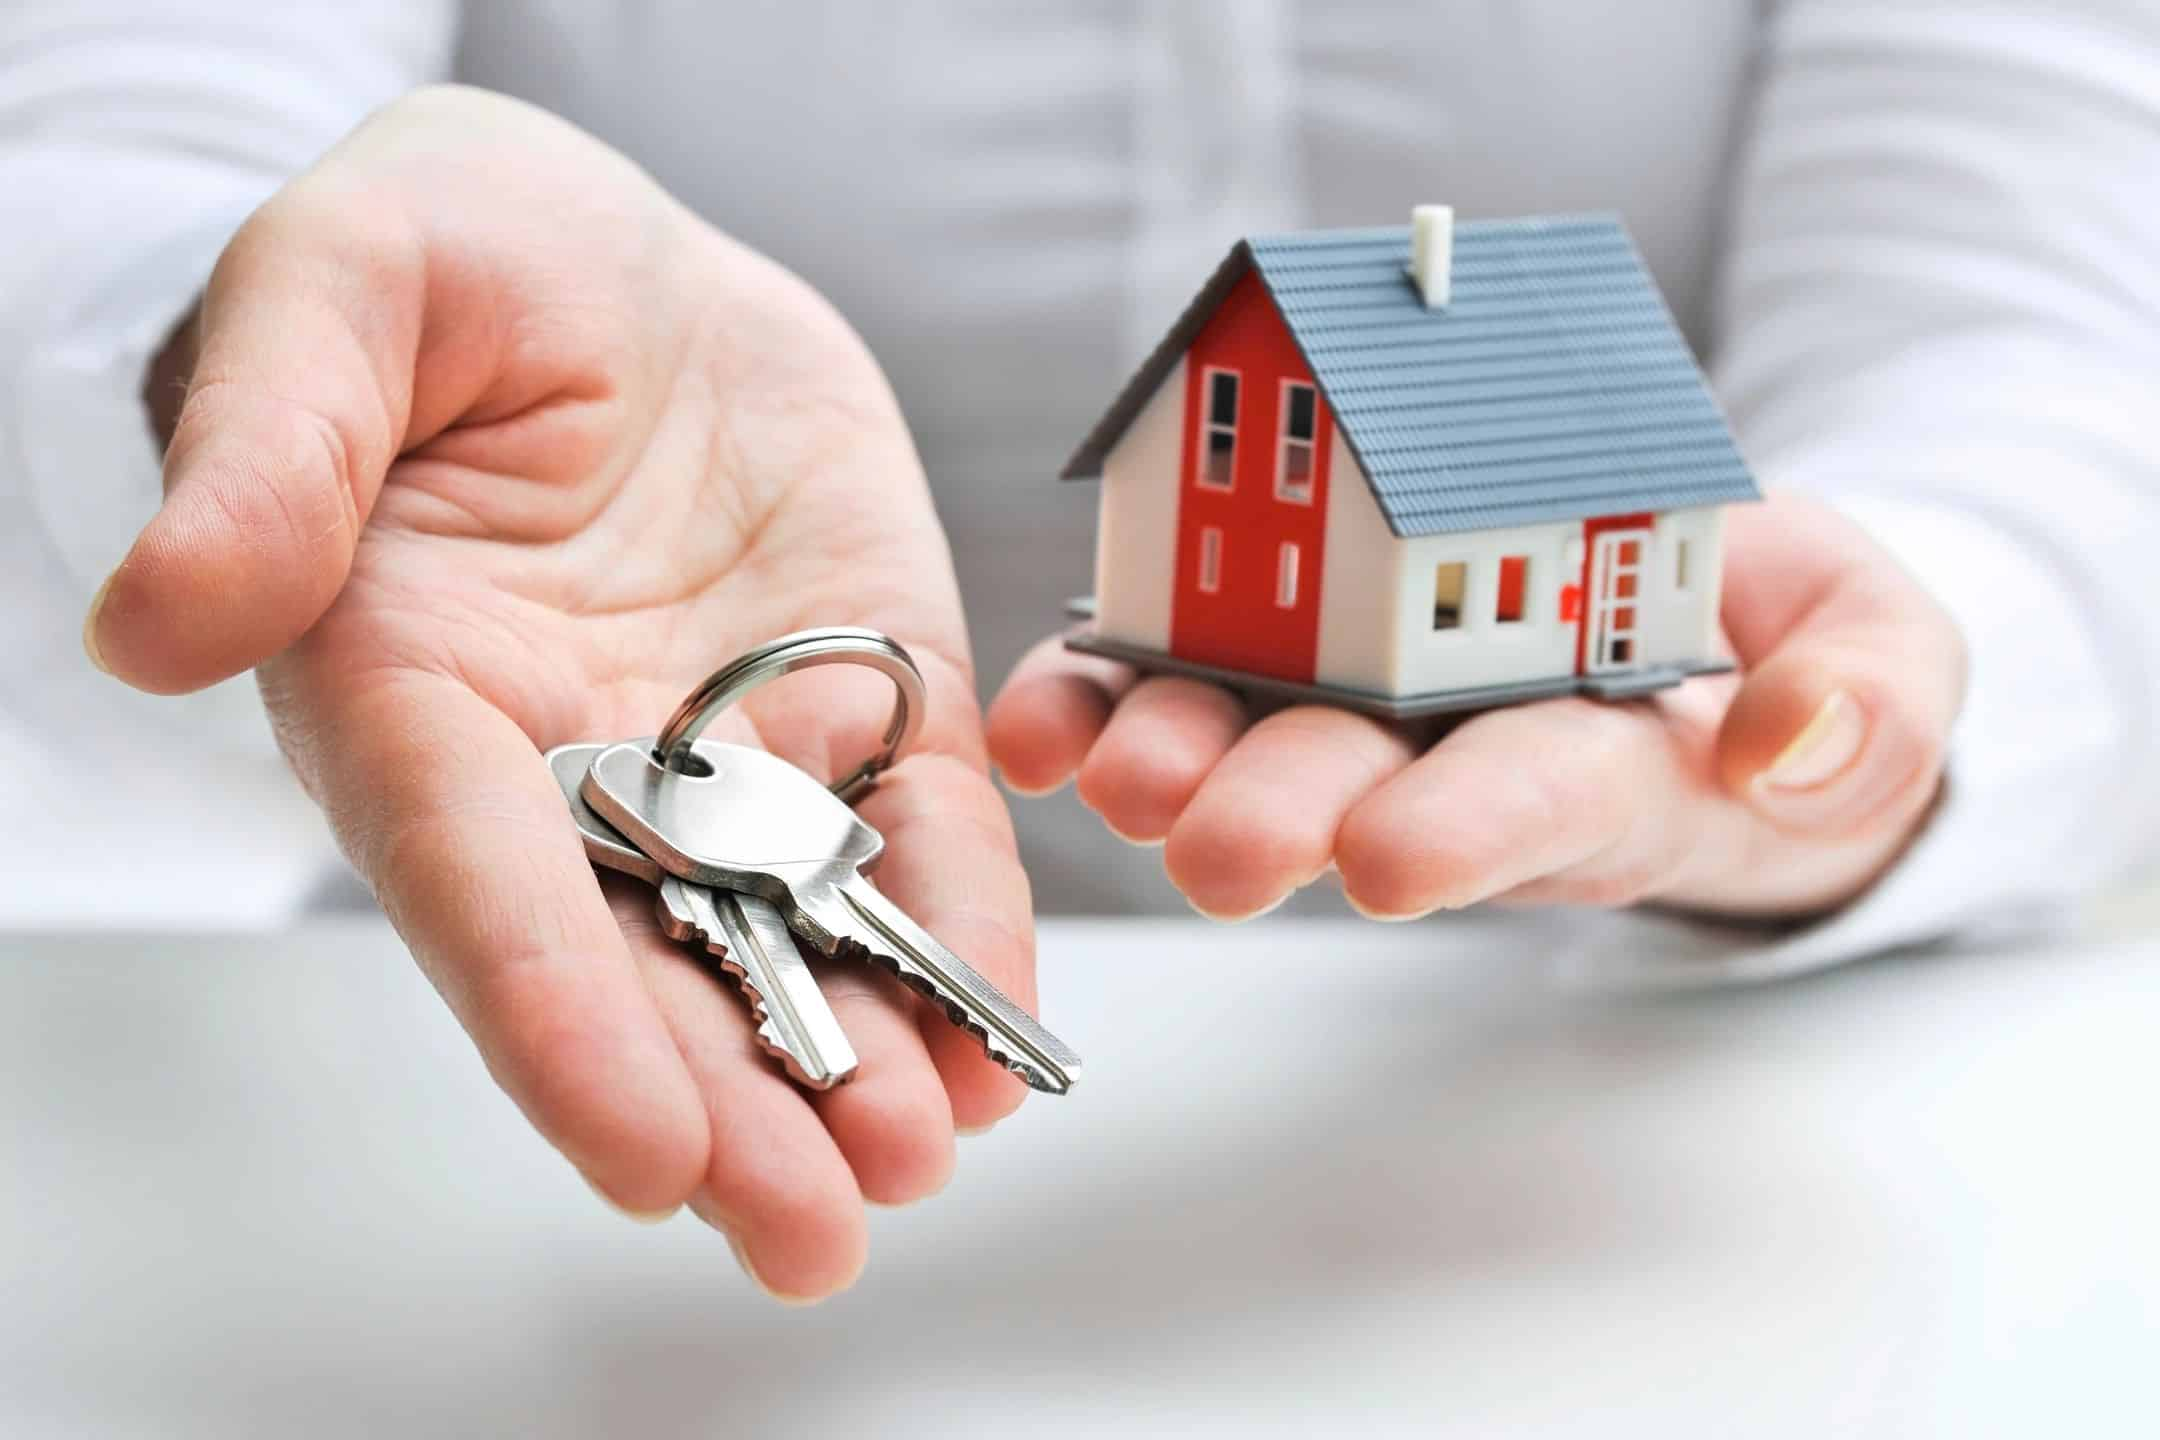 Buying Real Estate - Keys to New Home